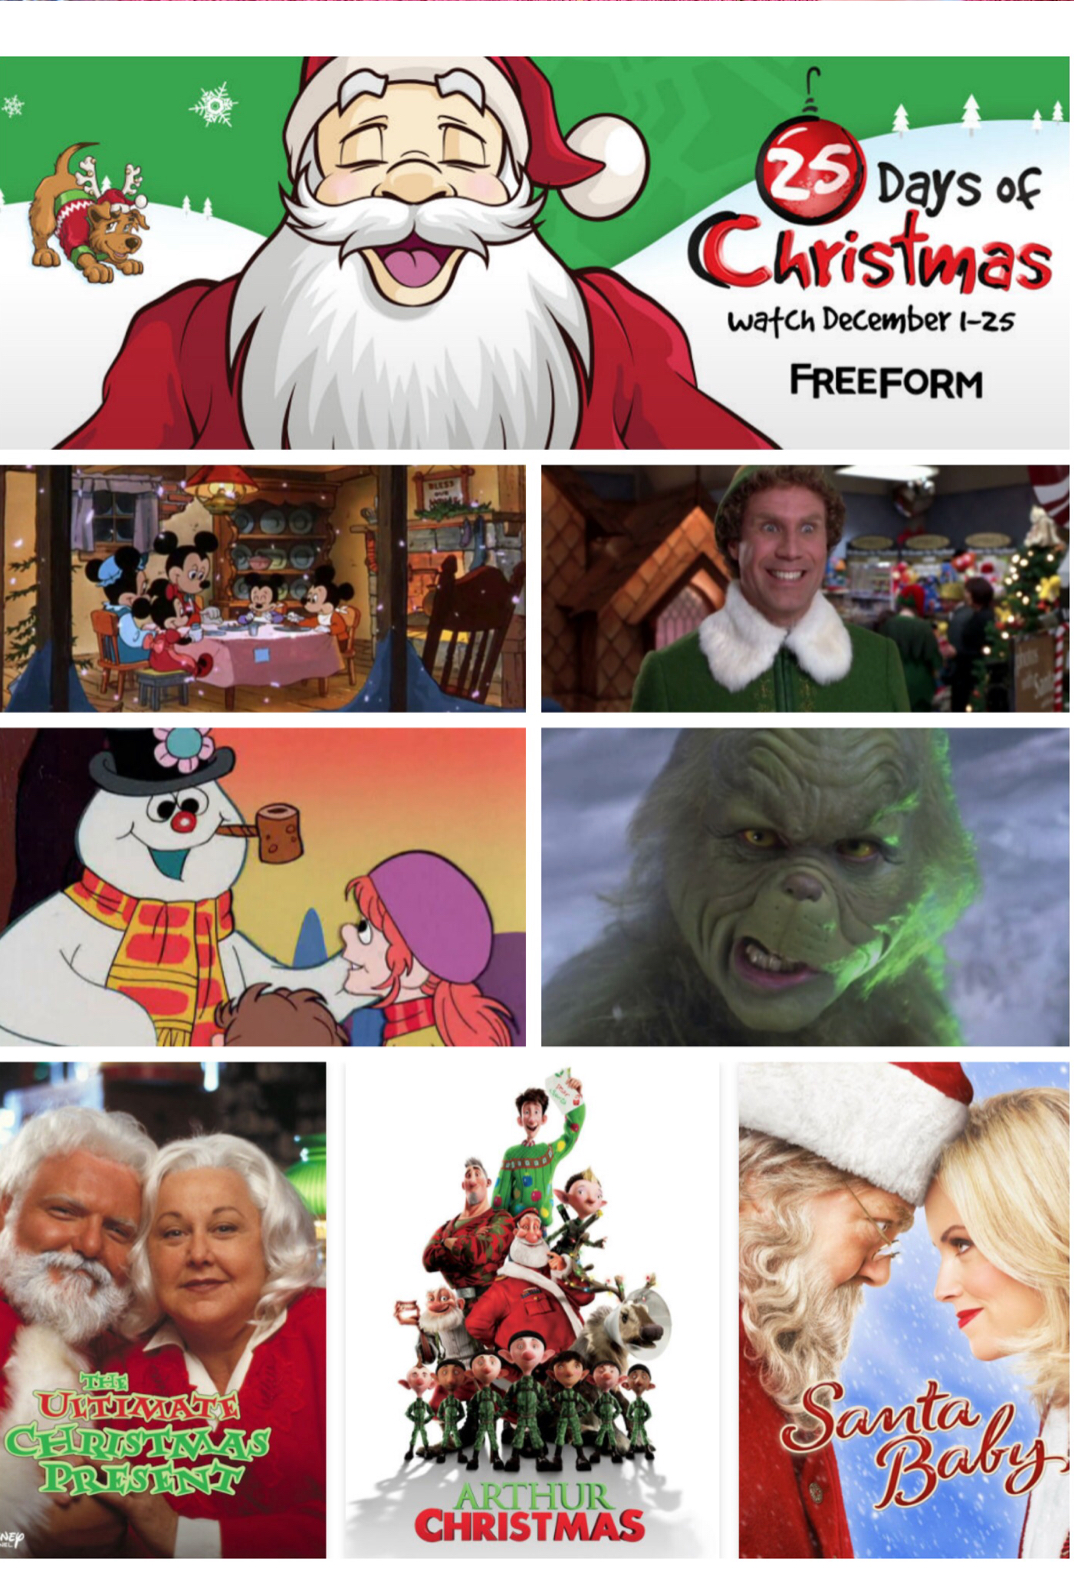 who love christmas movies we do and we are so excited the freeform 25 days